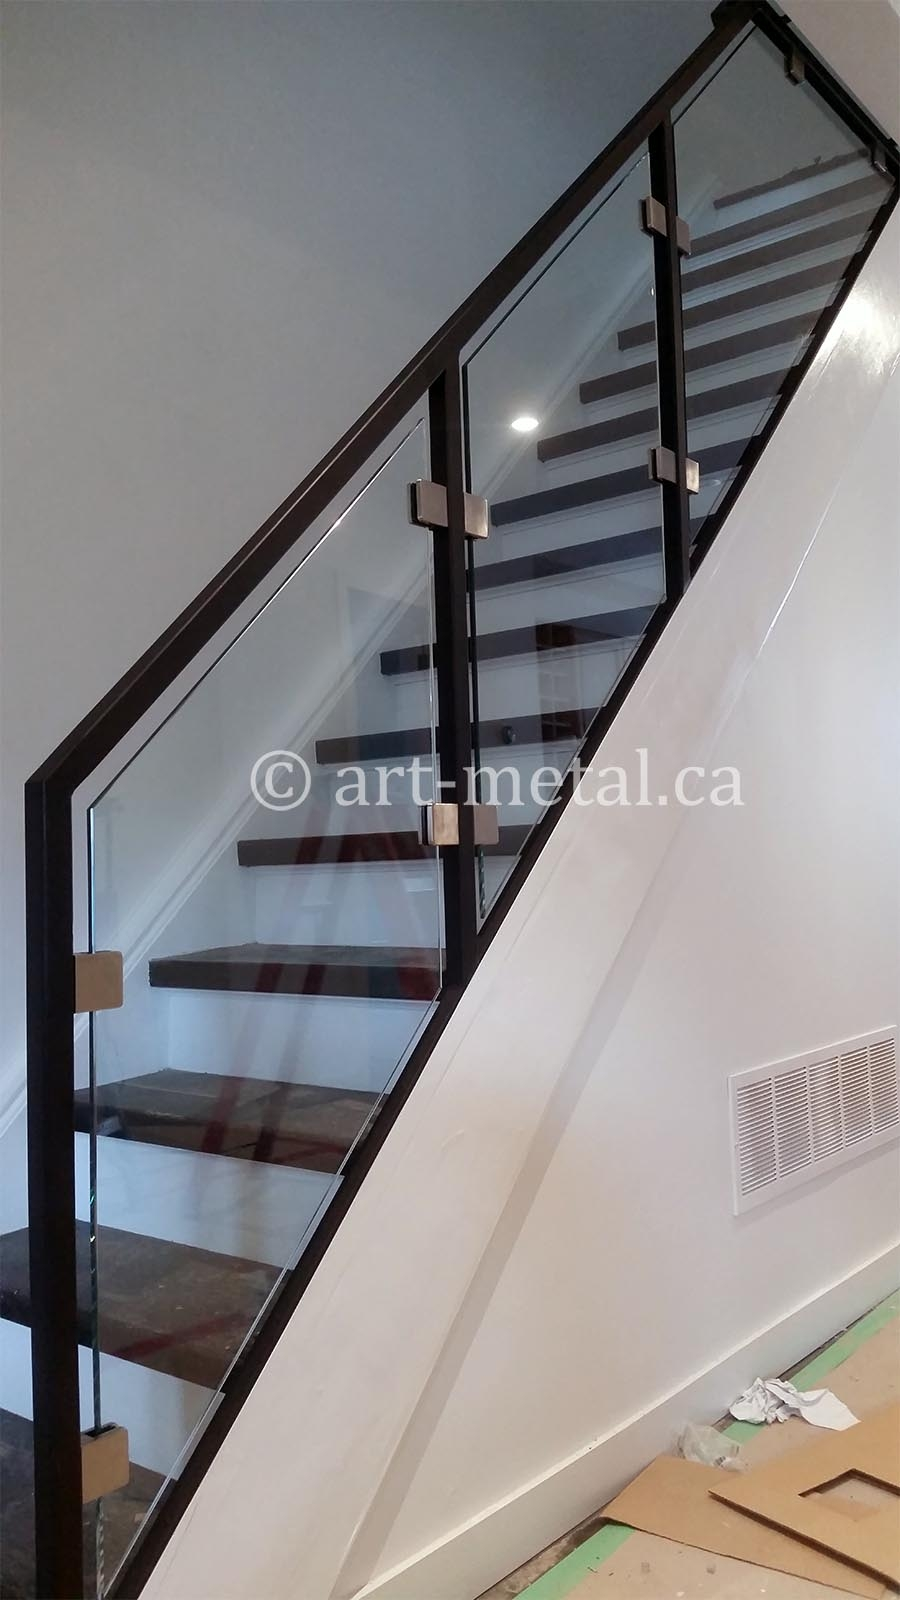 Modern Stair Railings Handrails Toronto Mississauga Gta | Modern Railing Designs For Stairs | Outdoor | Small | Interior | Stairway | Inside Staircase